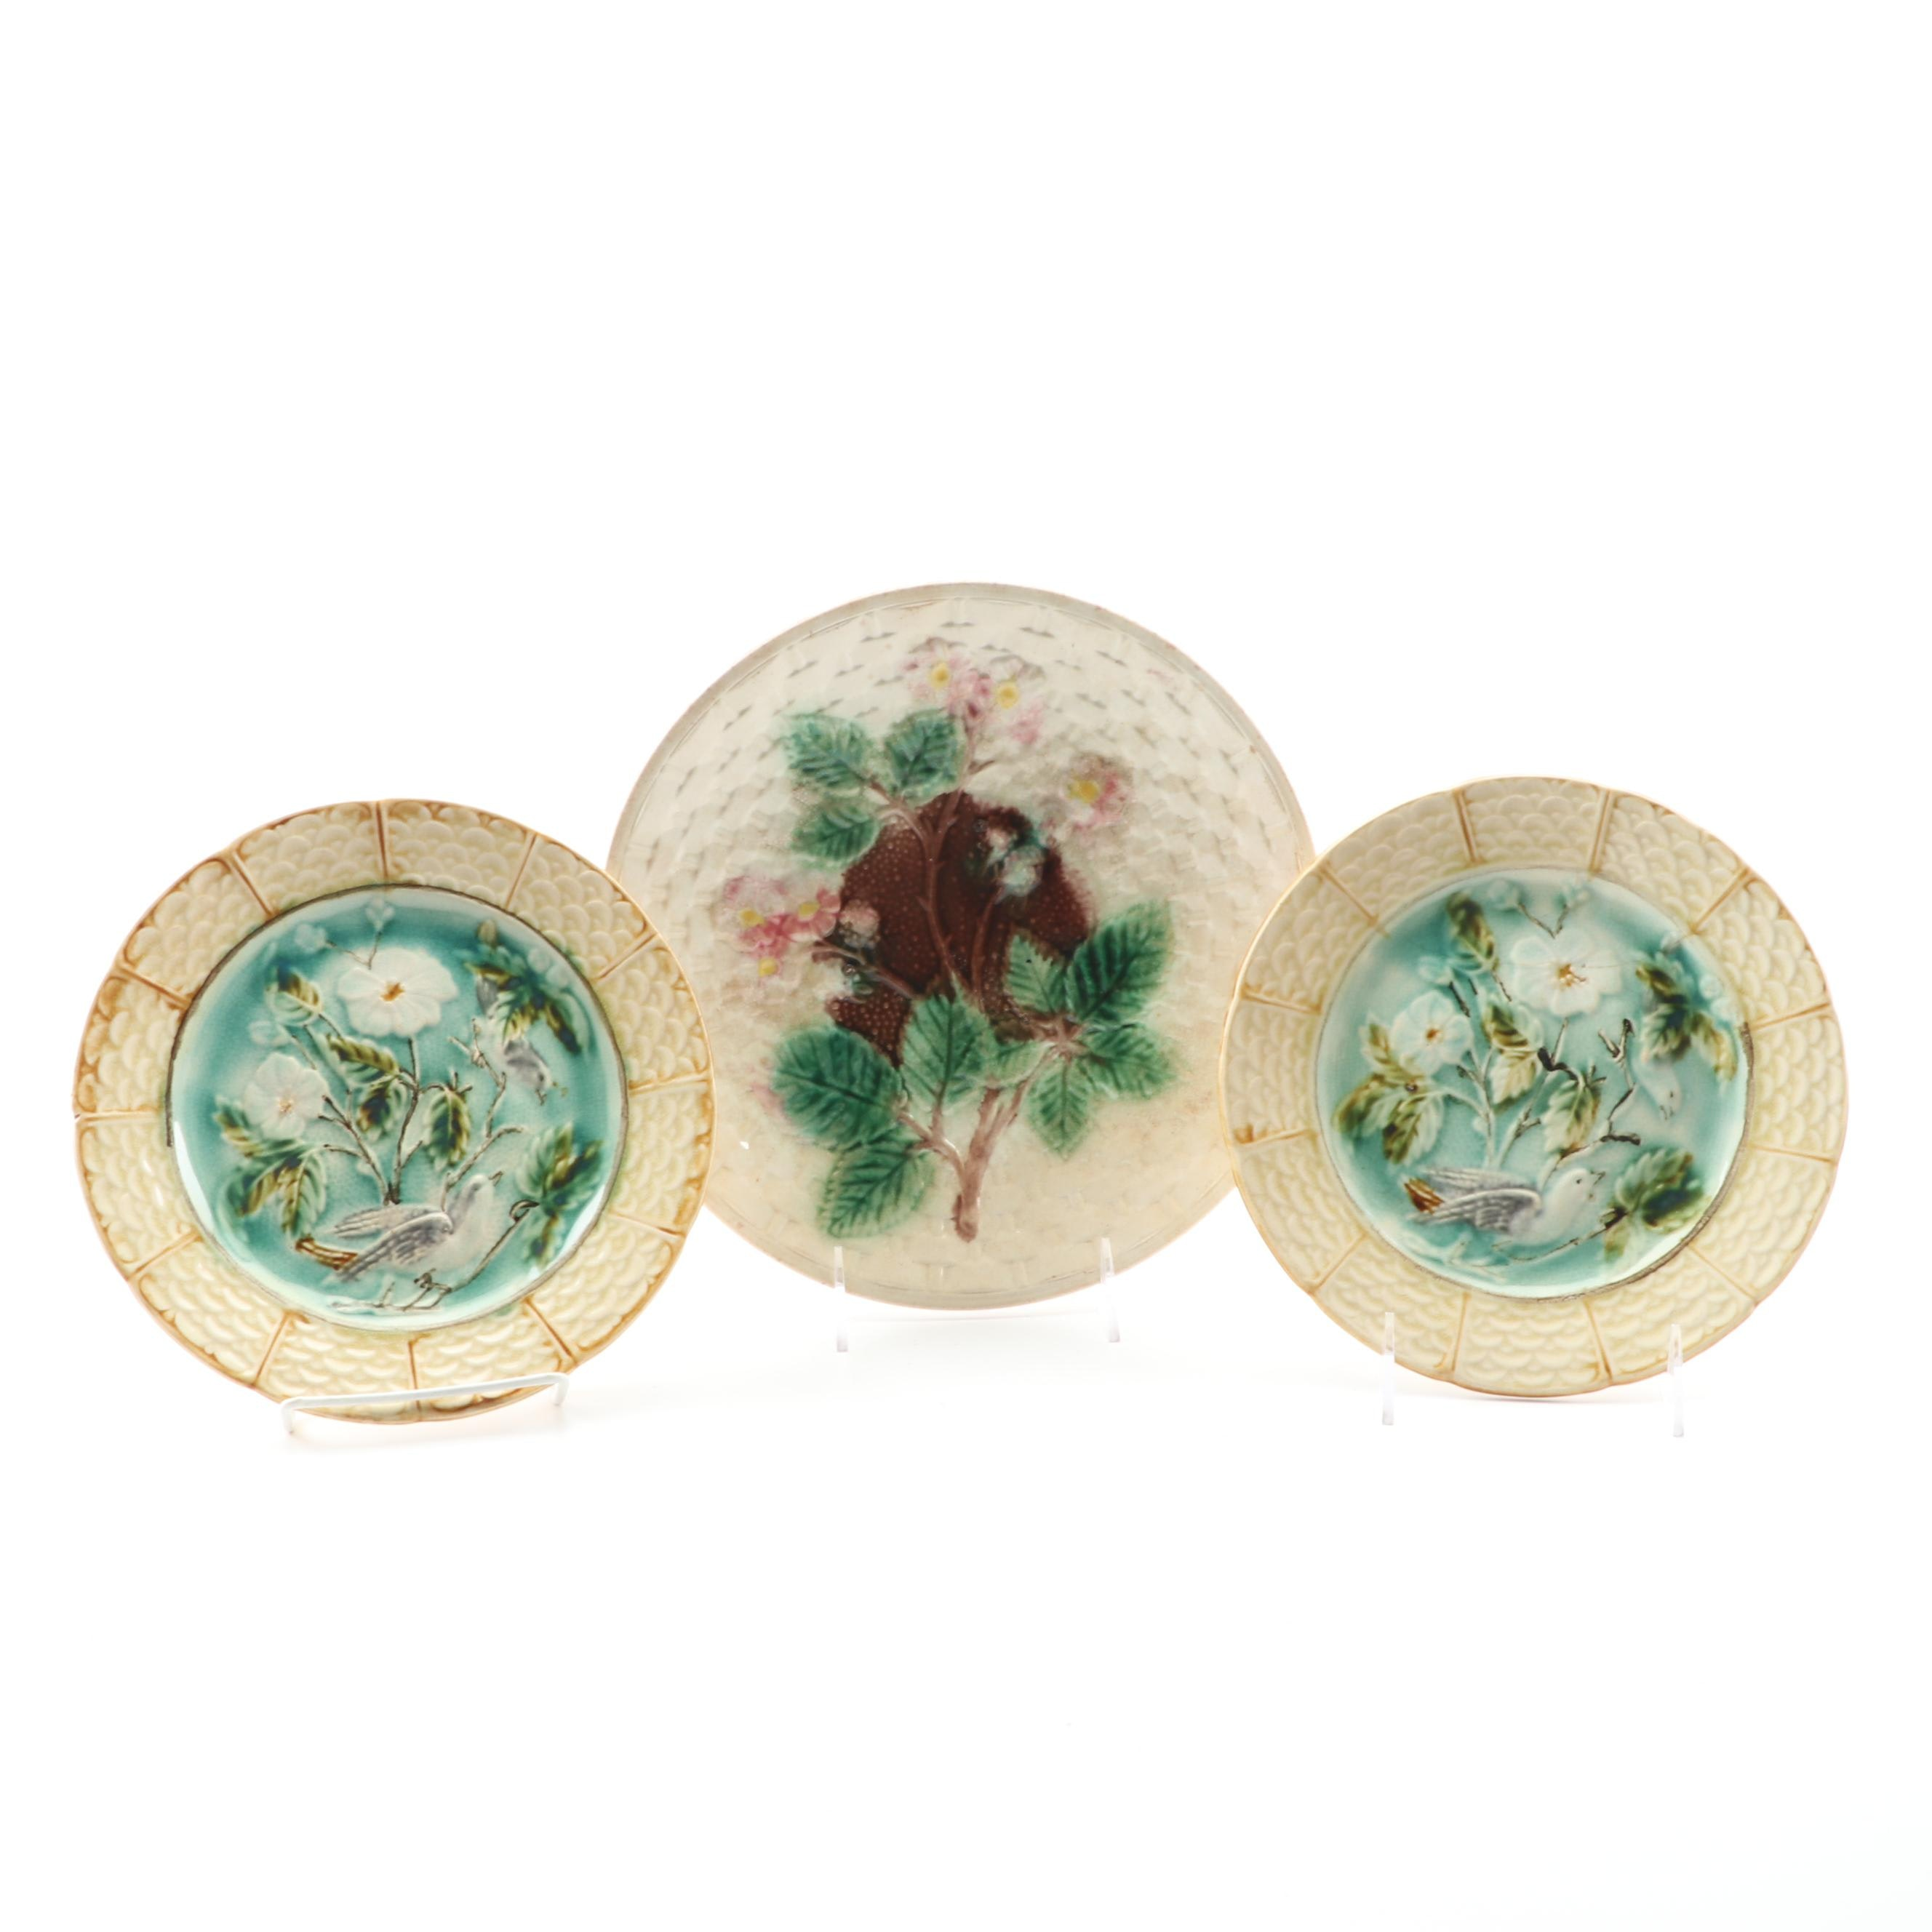 Antique Floral Themed Majolica Plates